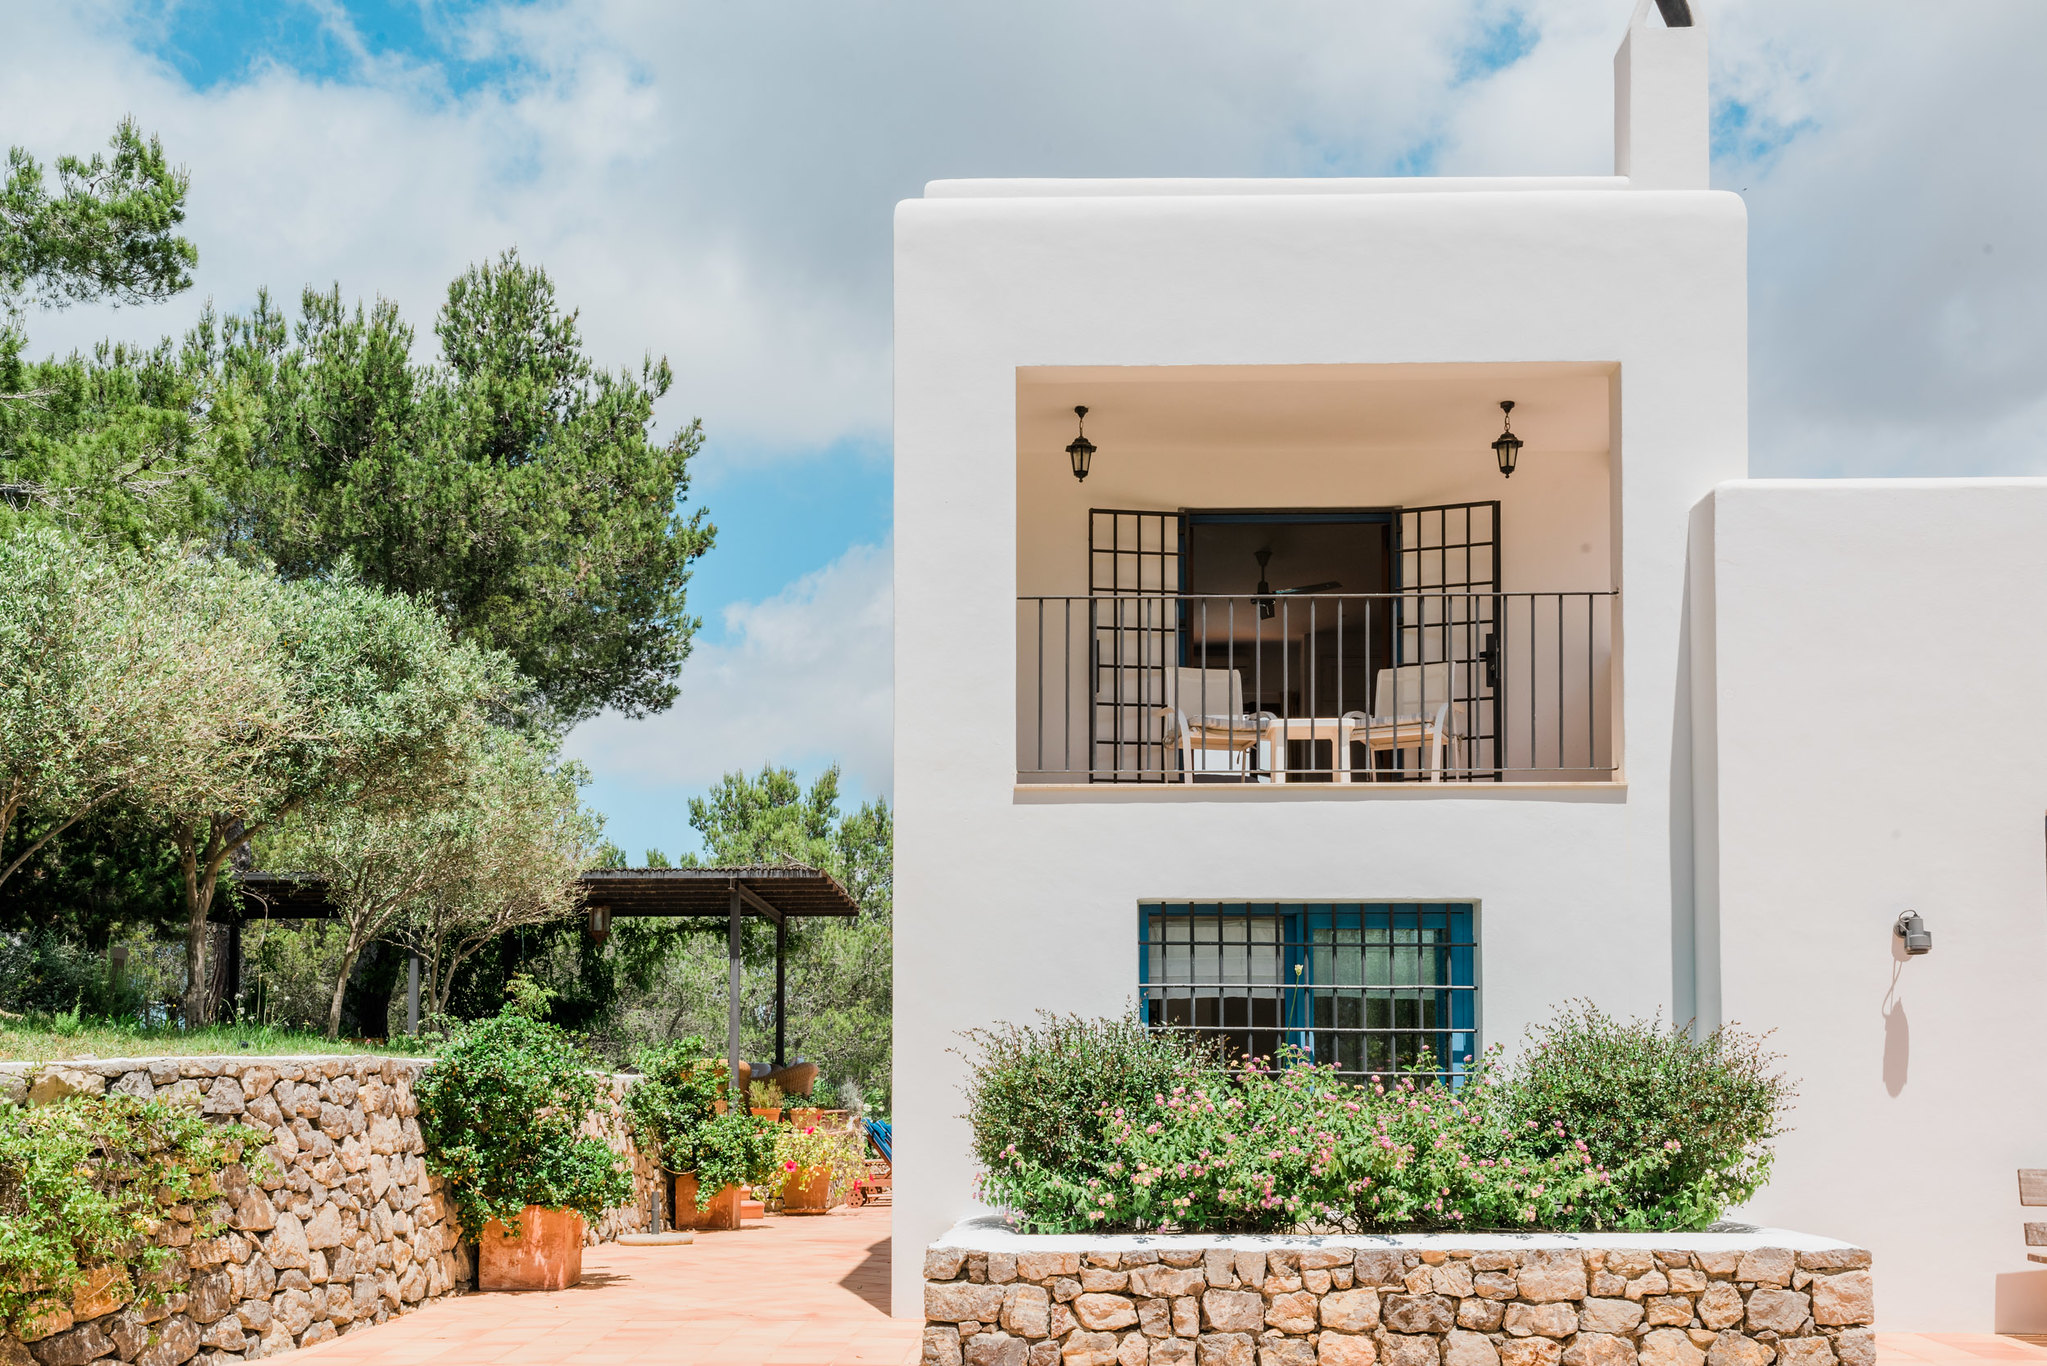 https://www.white-ibiza.com/wp-content/uploads/2020/06/white-ibiza-villas-can-madera-exterior-outside.jpg